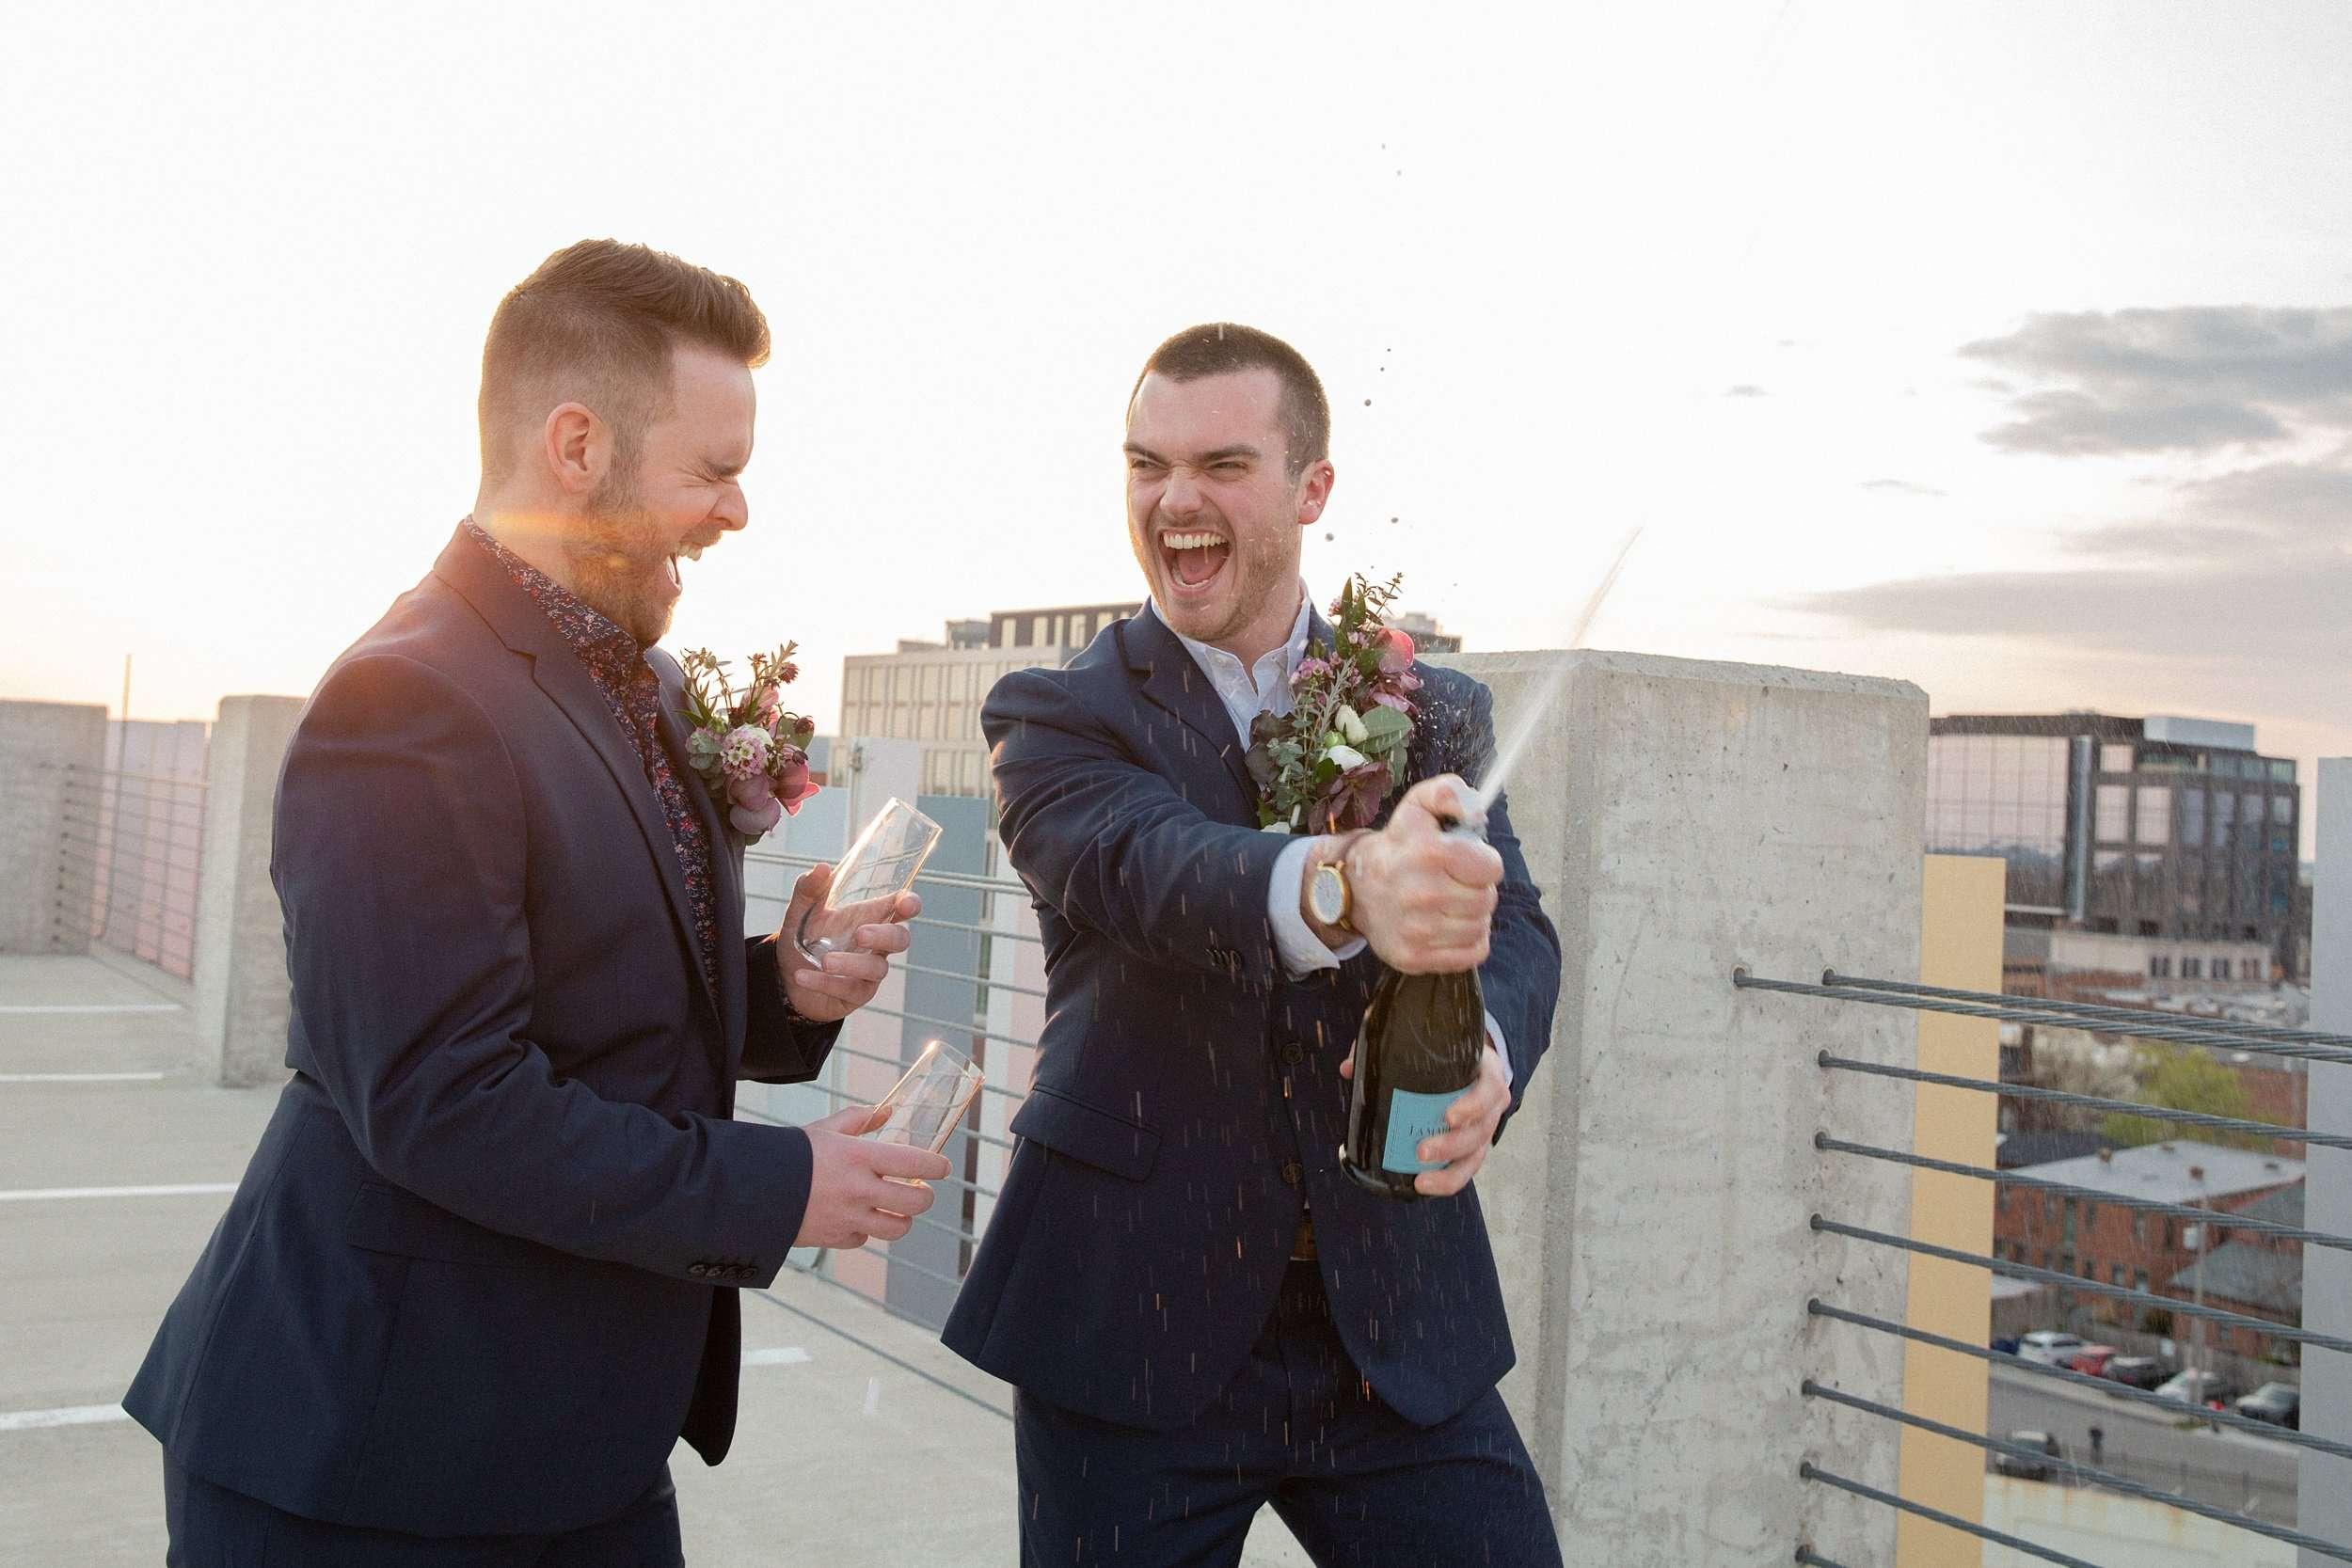 two gay men wearing navy blue suits are laughing while spraying champagne together at sunset in a city setting